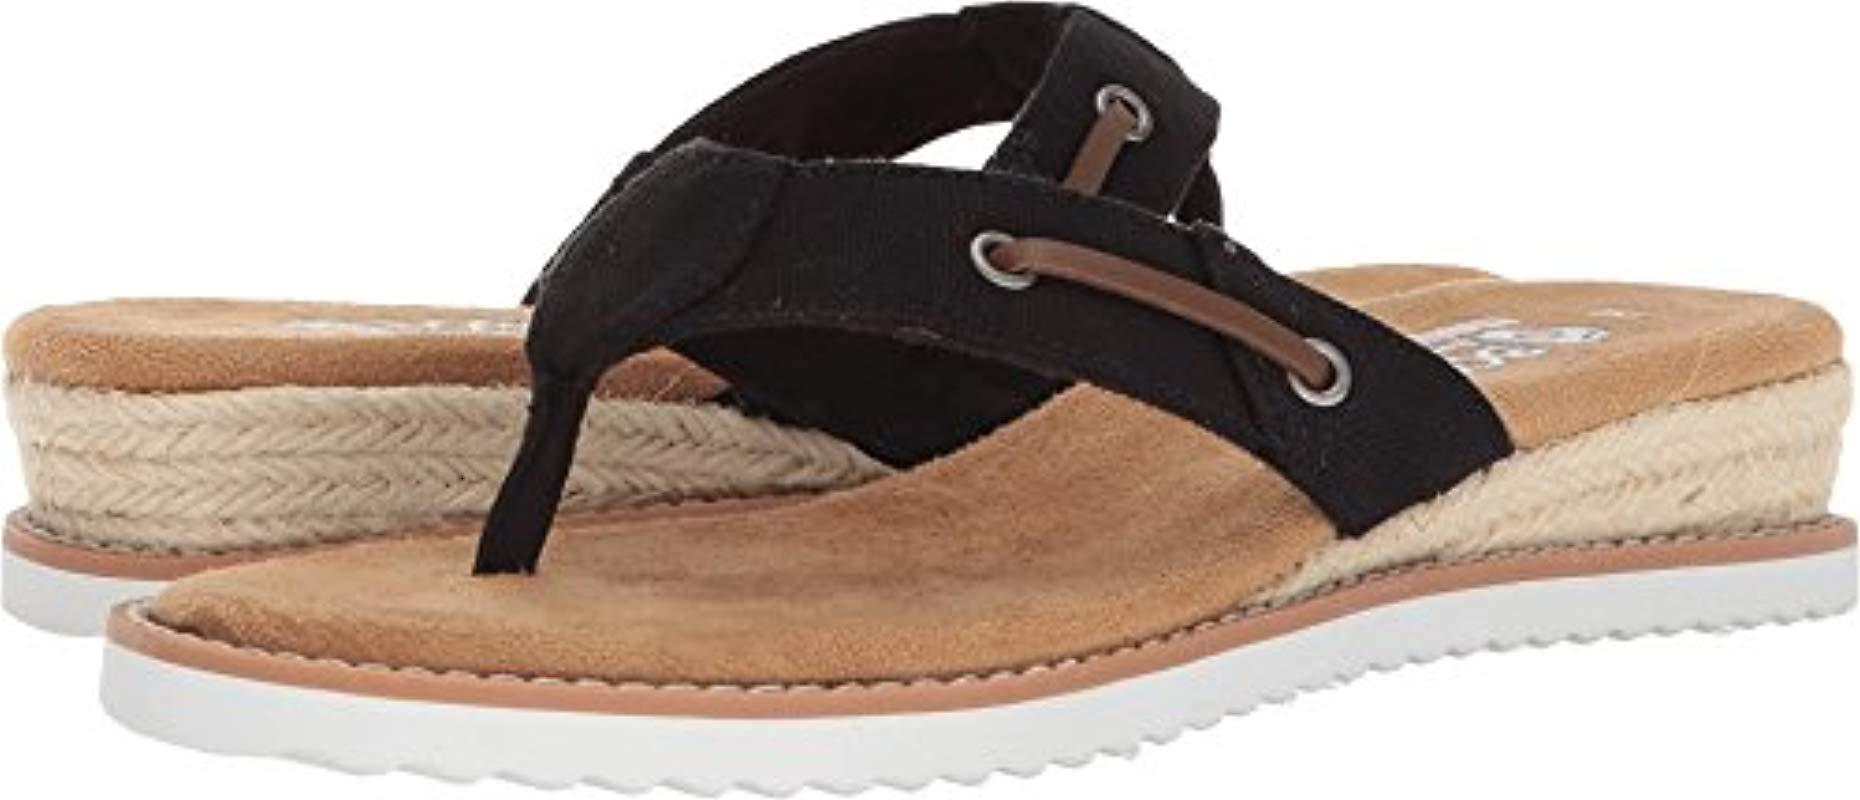 8a81ee6272e9 Lyst - Skechers Bobs Desert Kiss-off Grid Flip-flop in Black - Save 61%